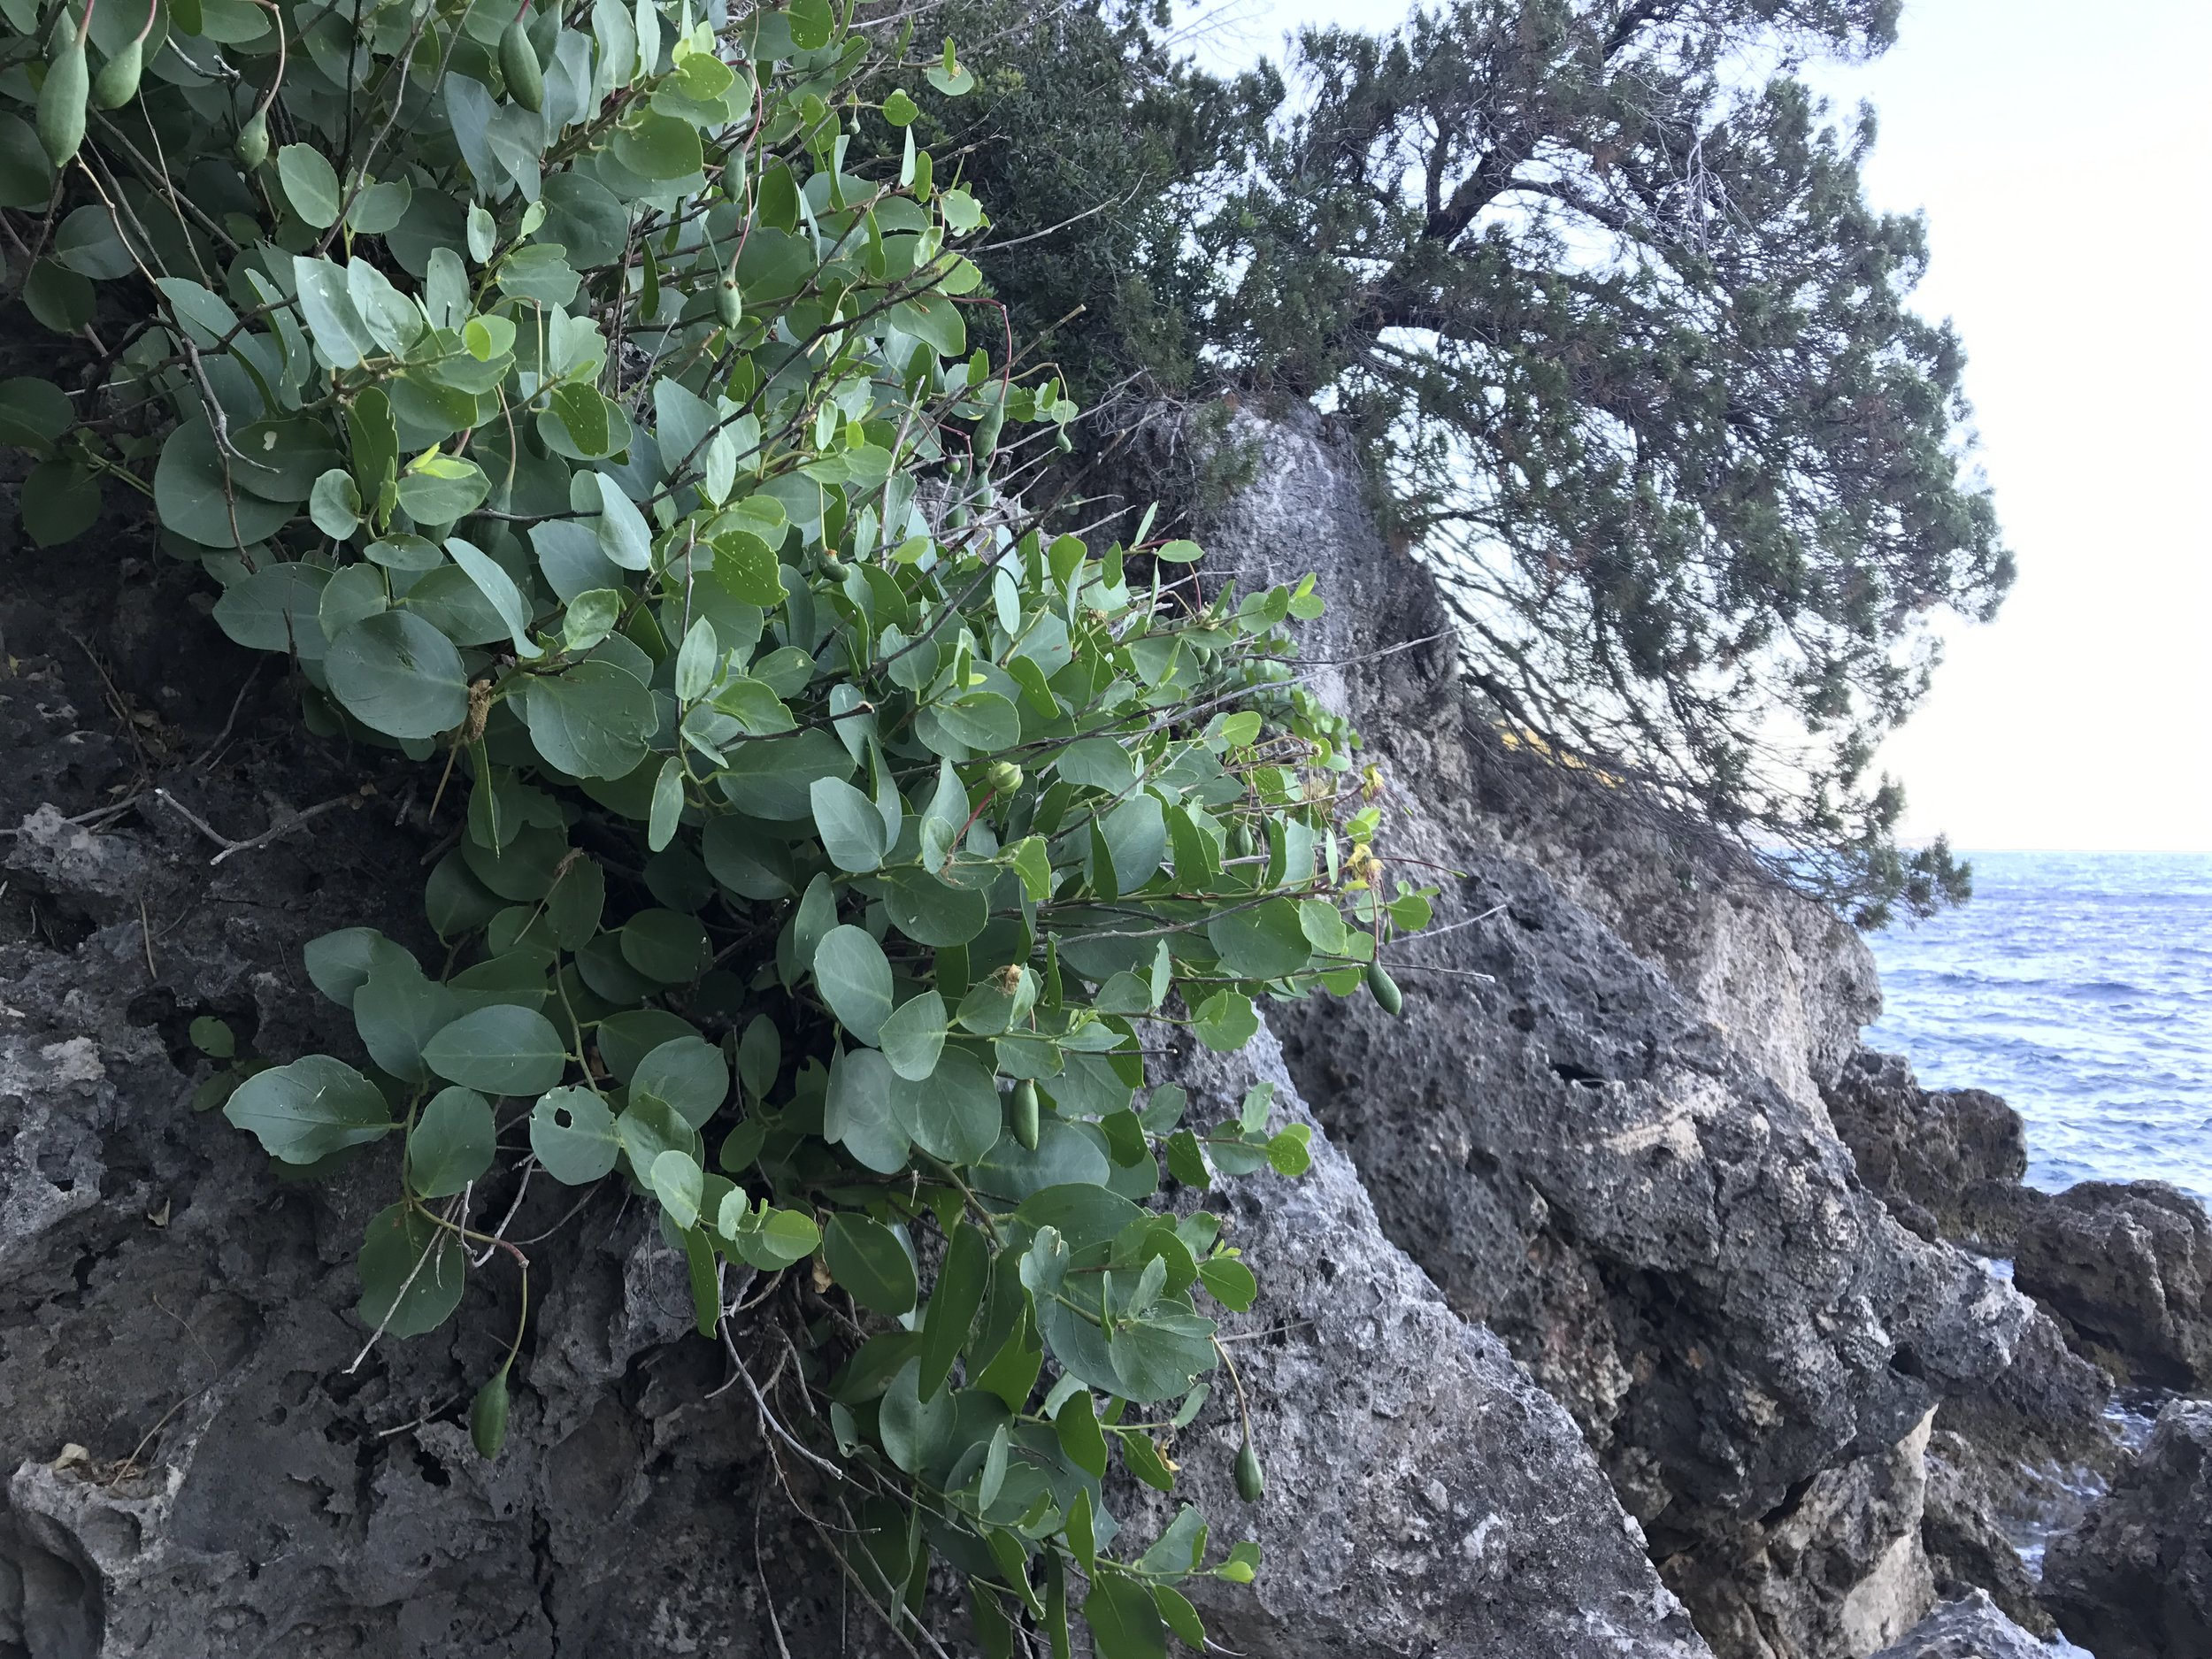 Capparis spinosa in its native habitat on coastal, exposed limestone rocks, Ionian Islands,  Greece.